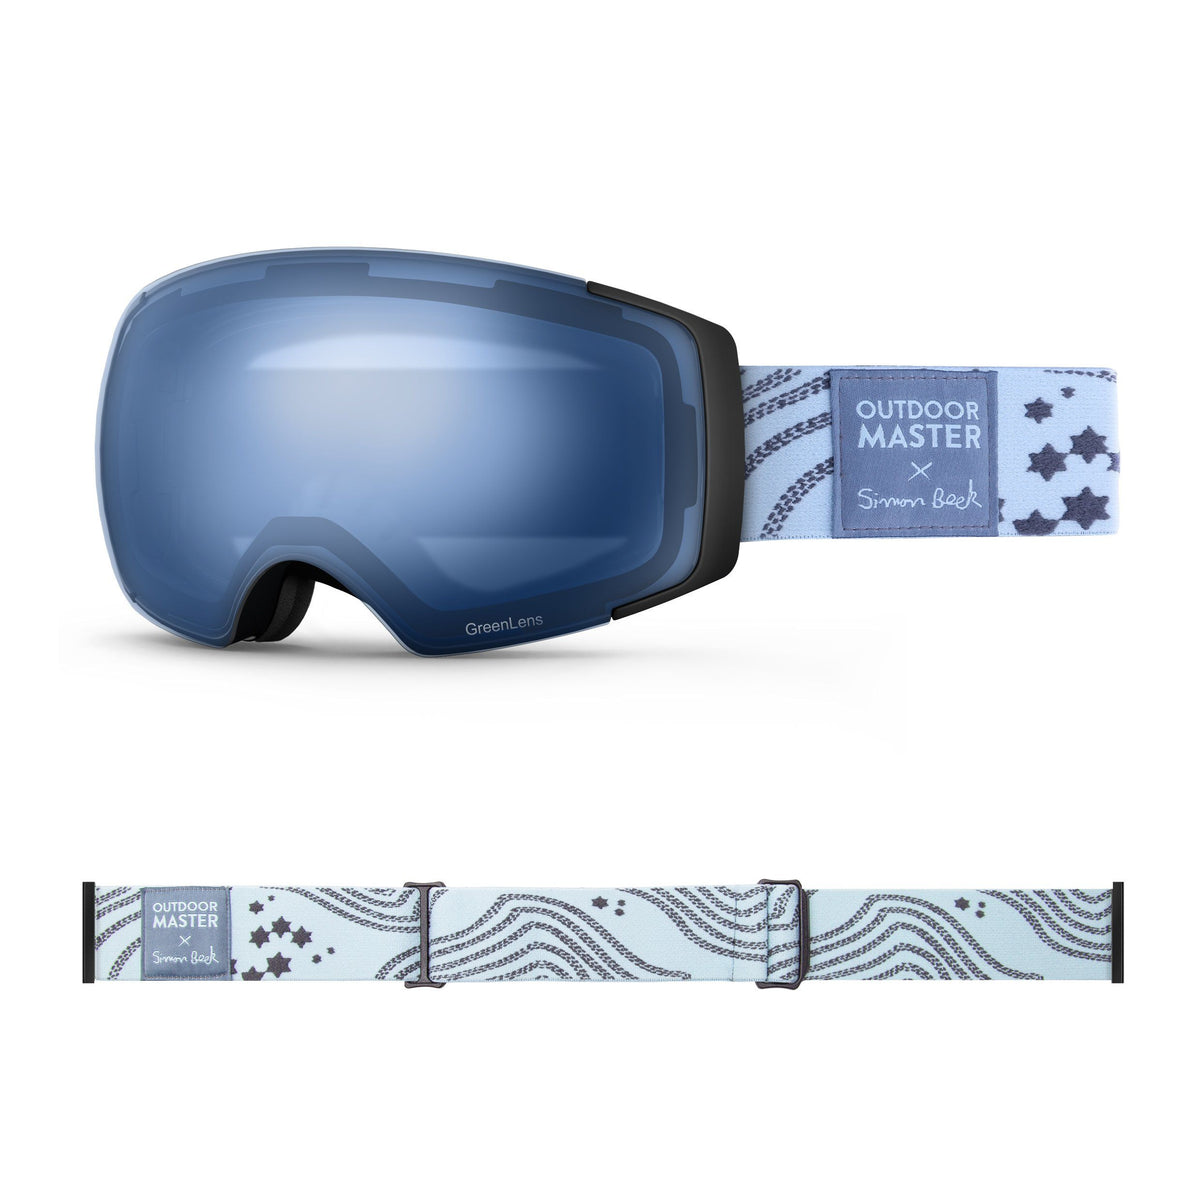 OutdoorMaster x Simon Beck Ski Goggles Pro Series - Snowshoeing Art Limited Edition OutdoorMaster GreenLens VLT 60% TAC Blue Polarized Star Road-Lightsteelblue